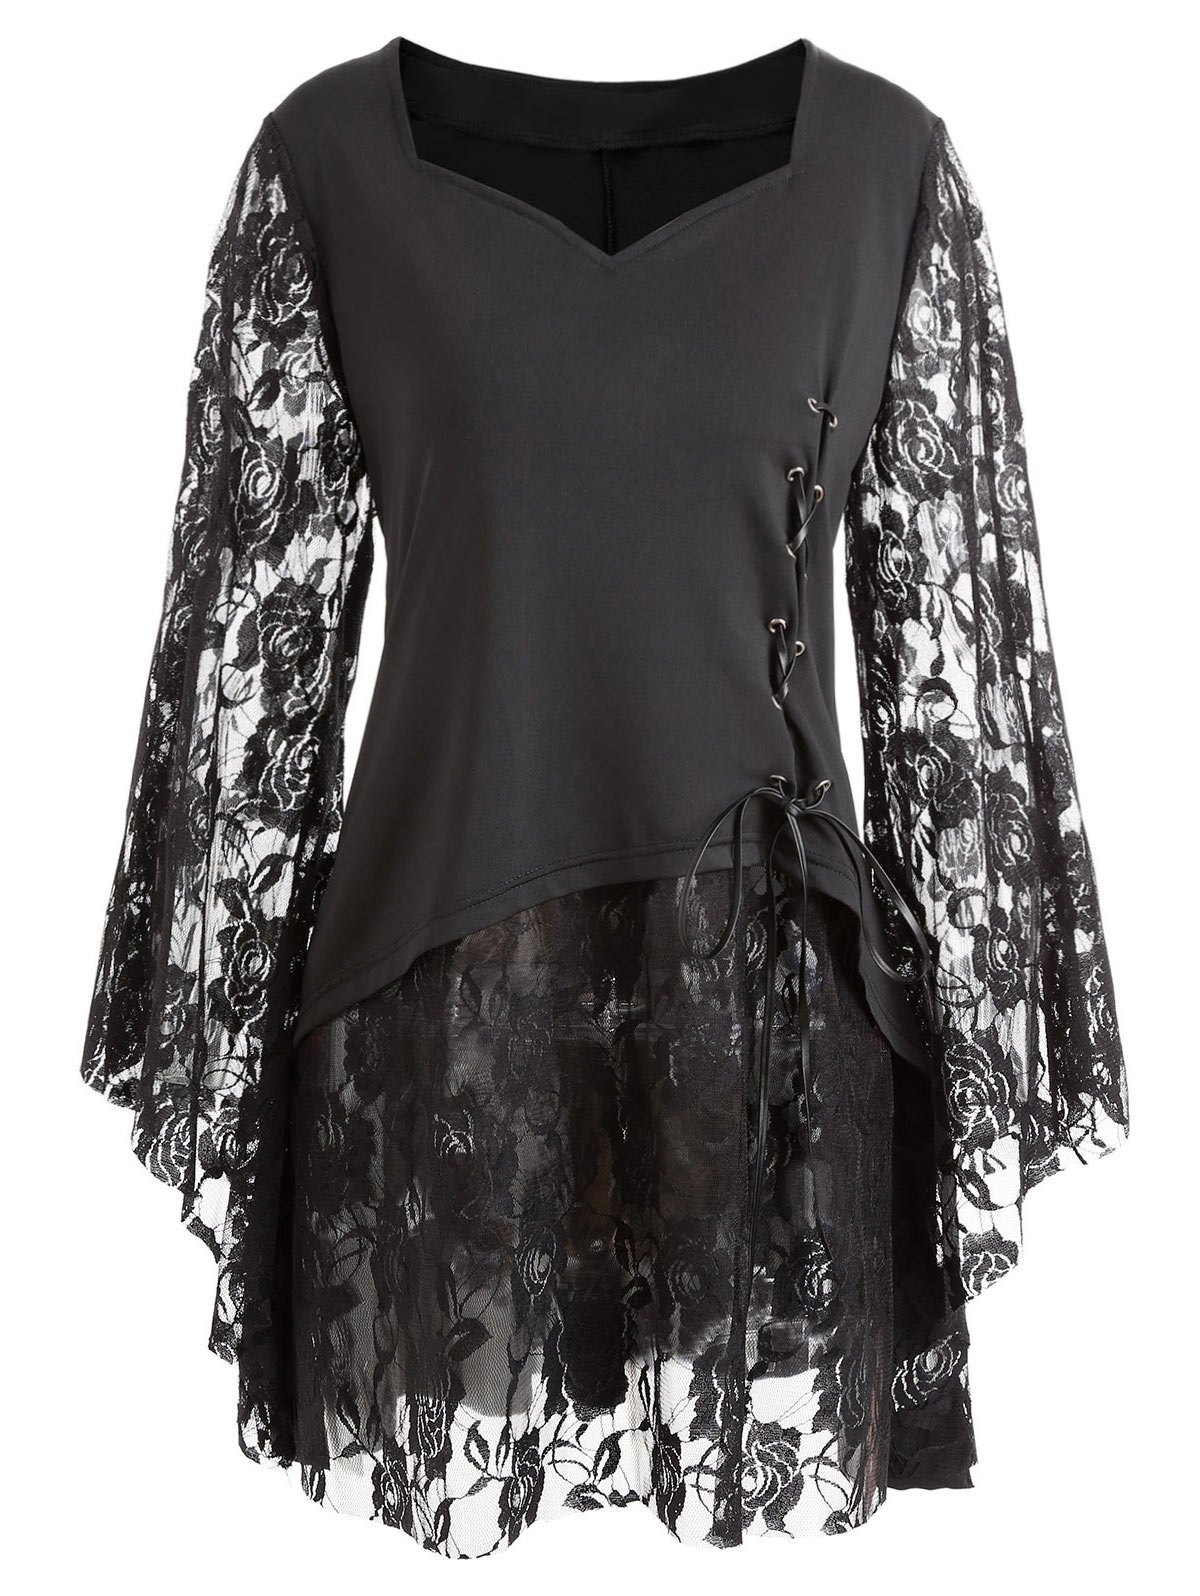 Chic Gothic Plus Size Bell Sleeve Layered Lace Up Top